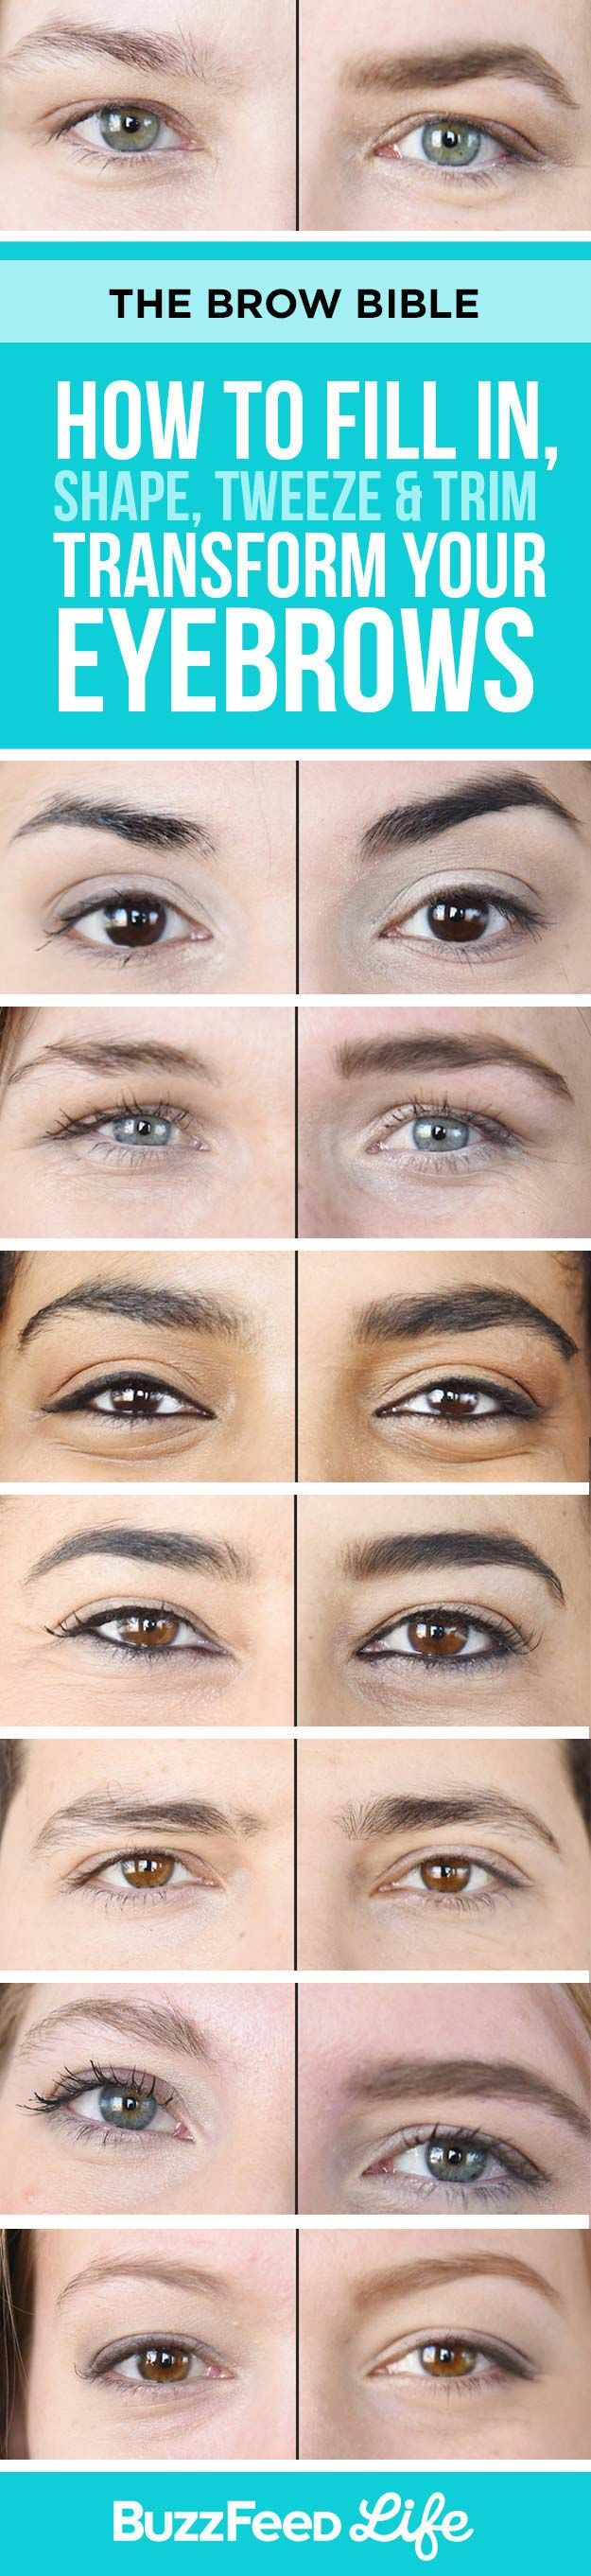 Brow Shaping Tutorials - Fill in, Shape, Tweeze, Trim and Transform Your Eyebrows - Awesome Makeup Tips for How To Get Beautiful Arches, Amazing Eye Looks and Perfect Eyebrows - Make Up Products and Beauty Tricks for All Different Hair Colors along with Guides for Different Eyeshadows - thegoddess.com/brow-shaping-tutorials